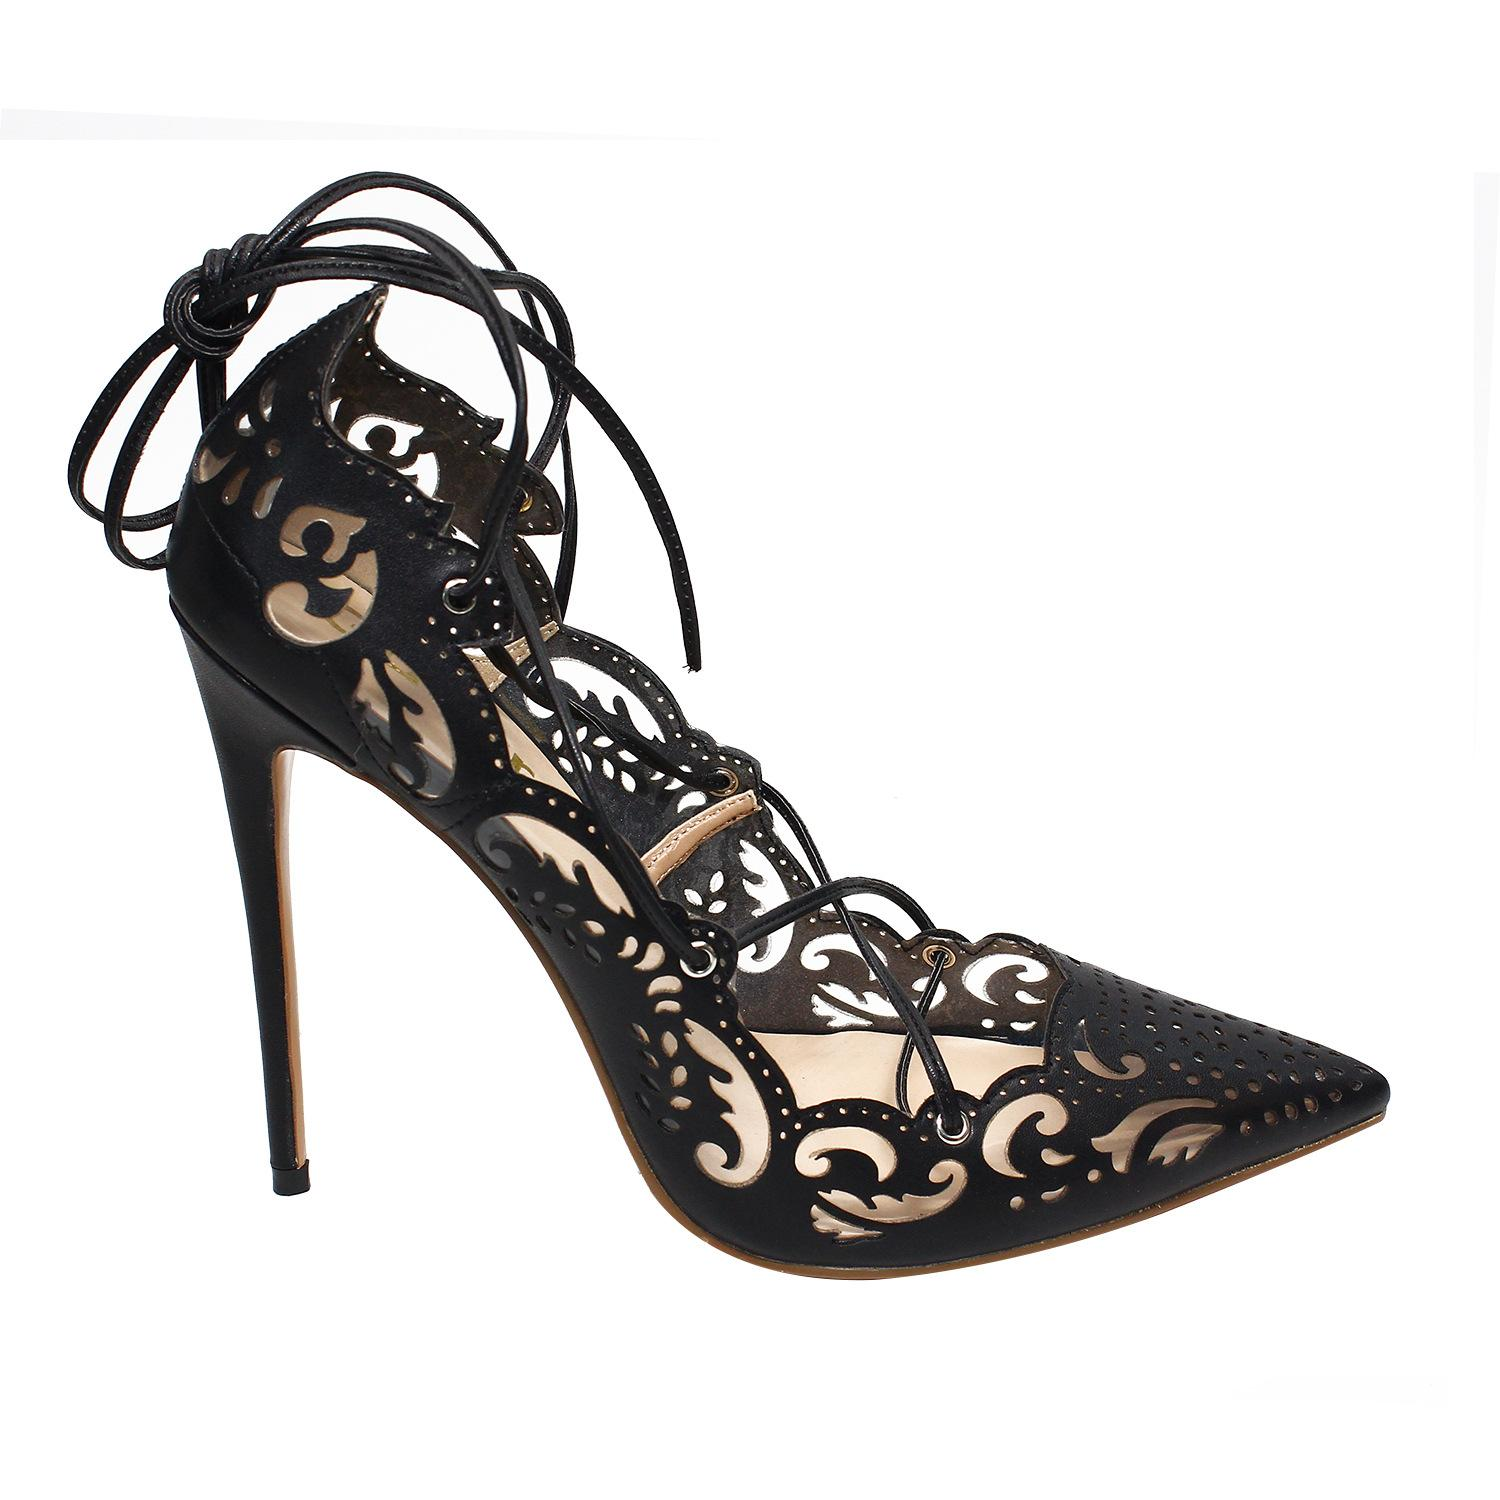 New sexy hollow pattern 12cm high-heeled pumps pointed toe lace-up red sole lady party single shoes size 35-46